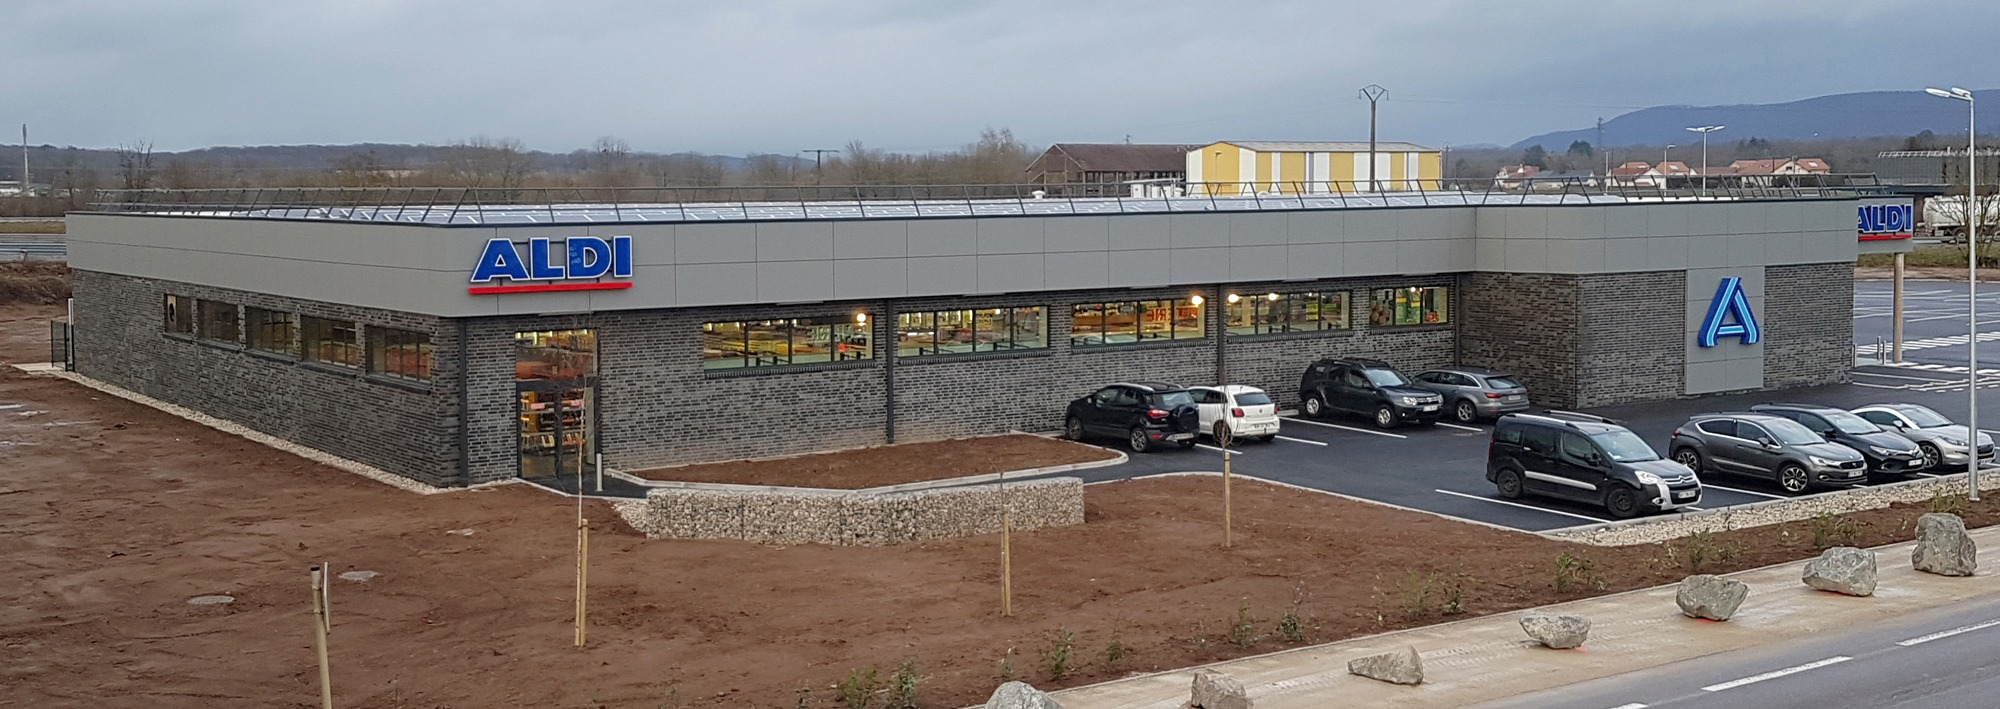 ALDI-Lure-70-Construction-d-un-magasin